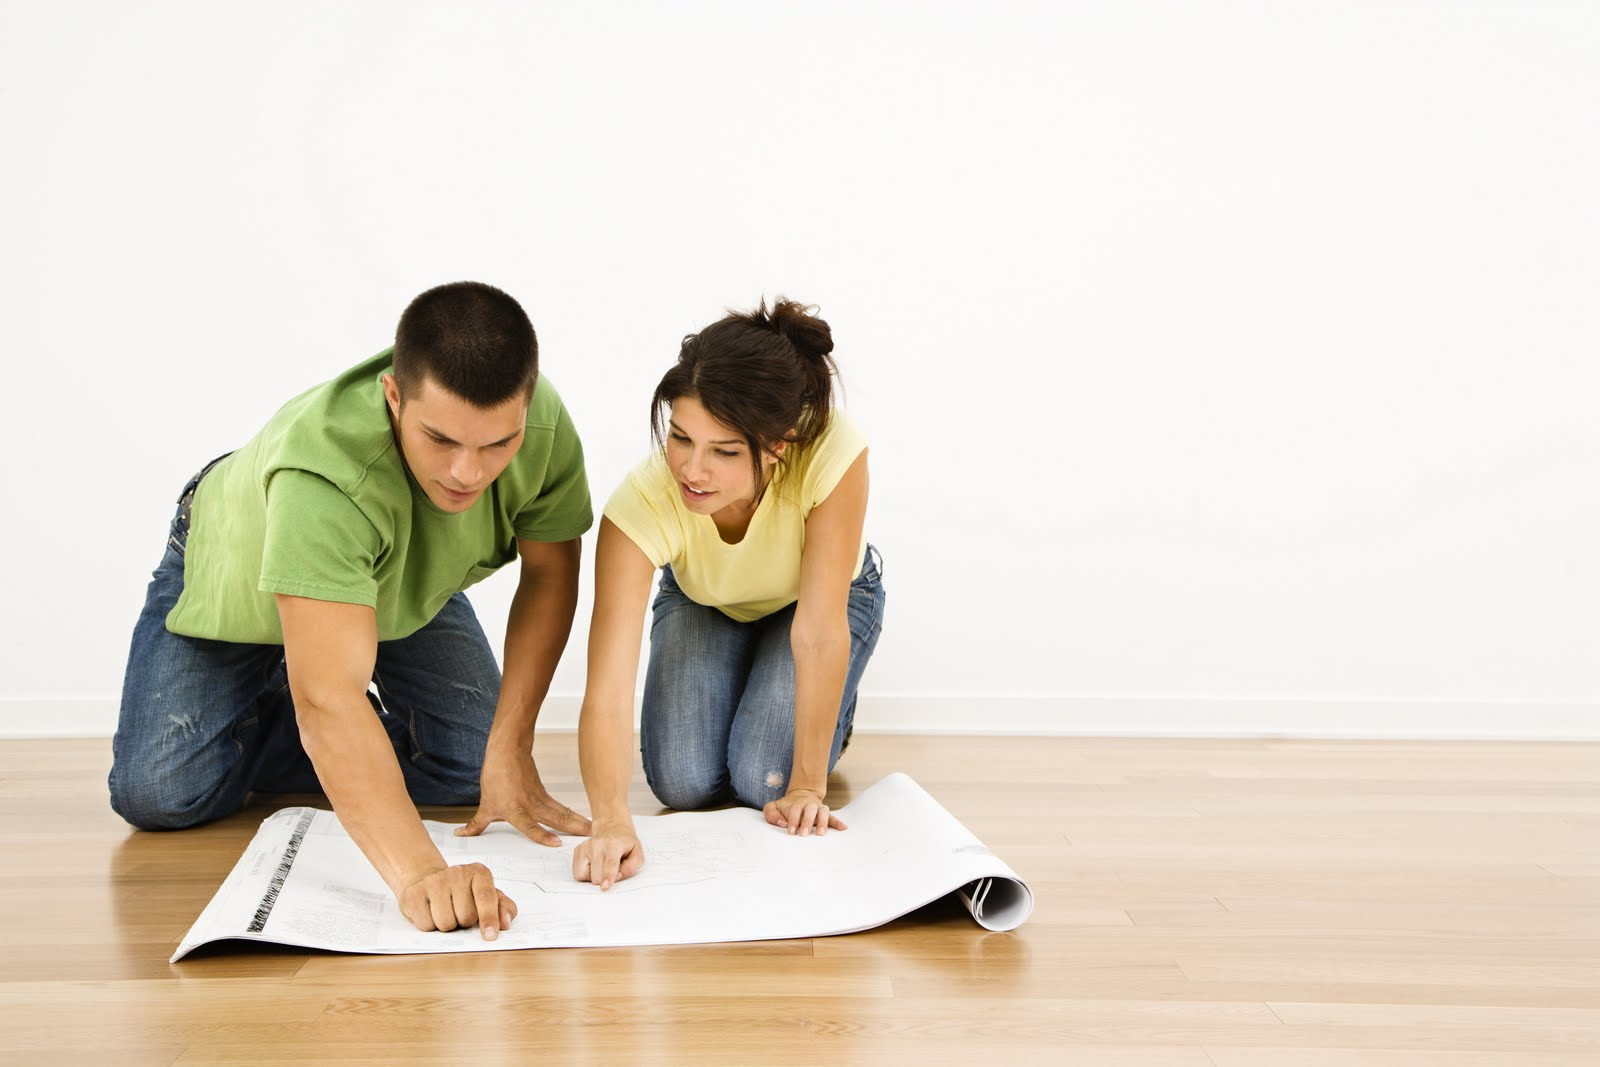 Renovations for How to renovate your home